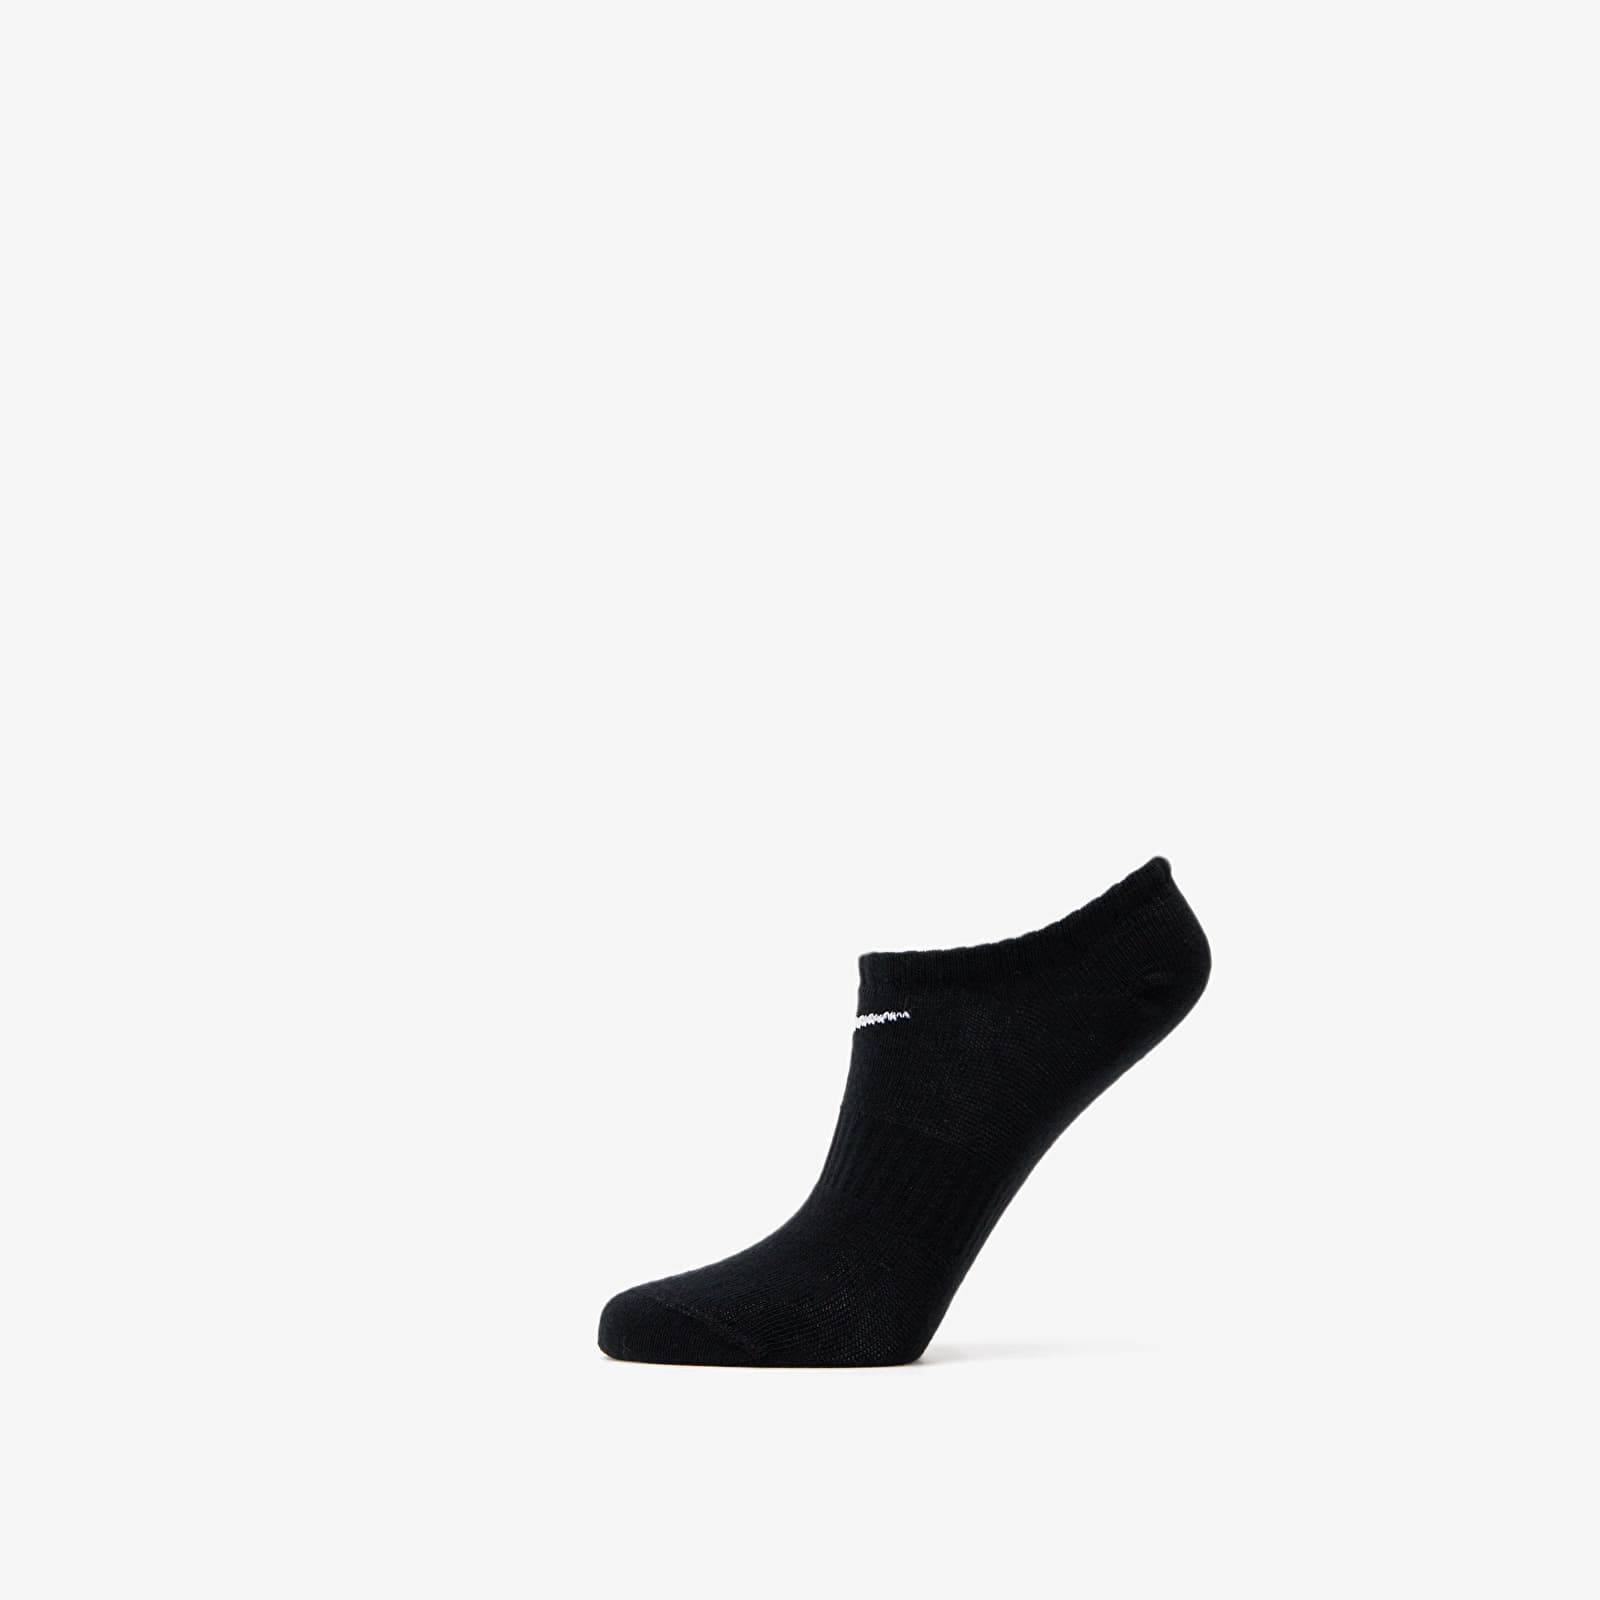 Nogavice Nike Everyday Cotton Lightweight No Show Socks 3 Pack Black